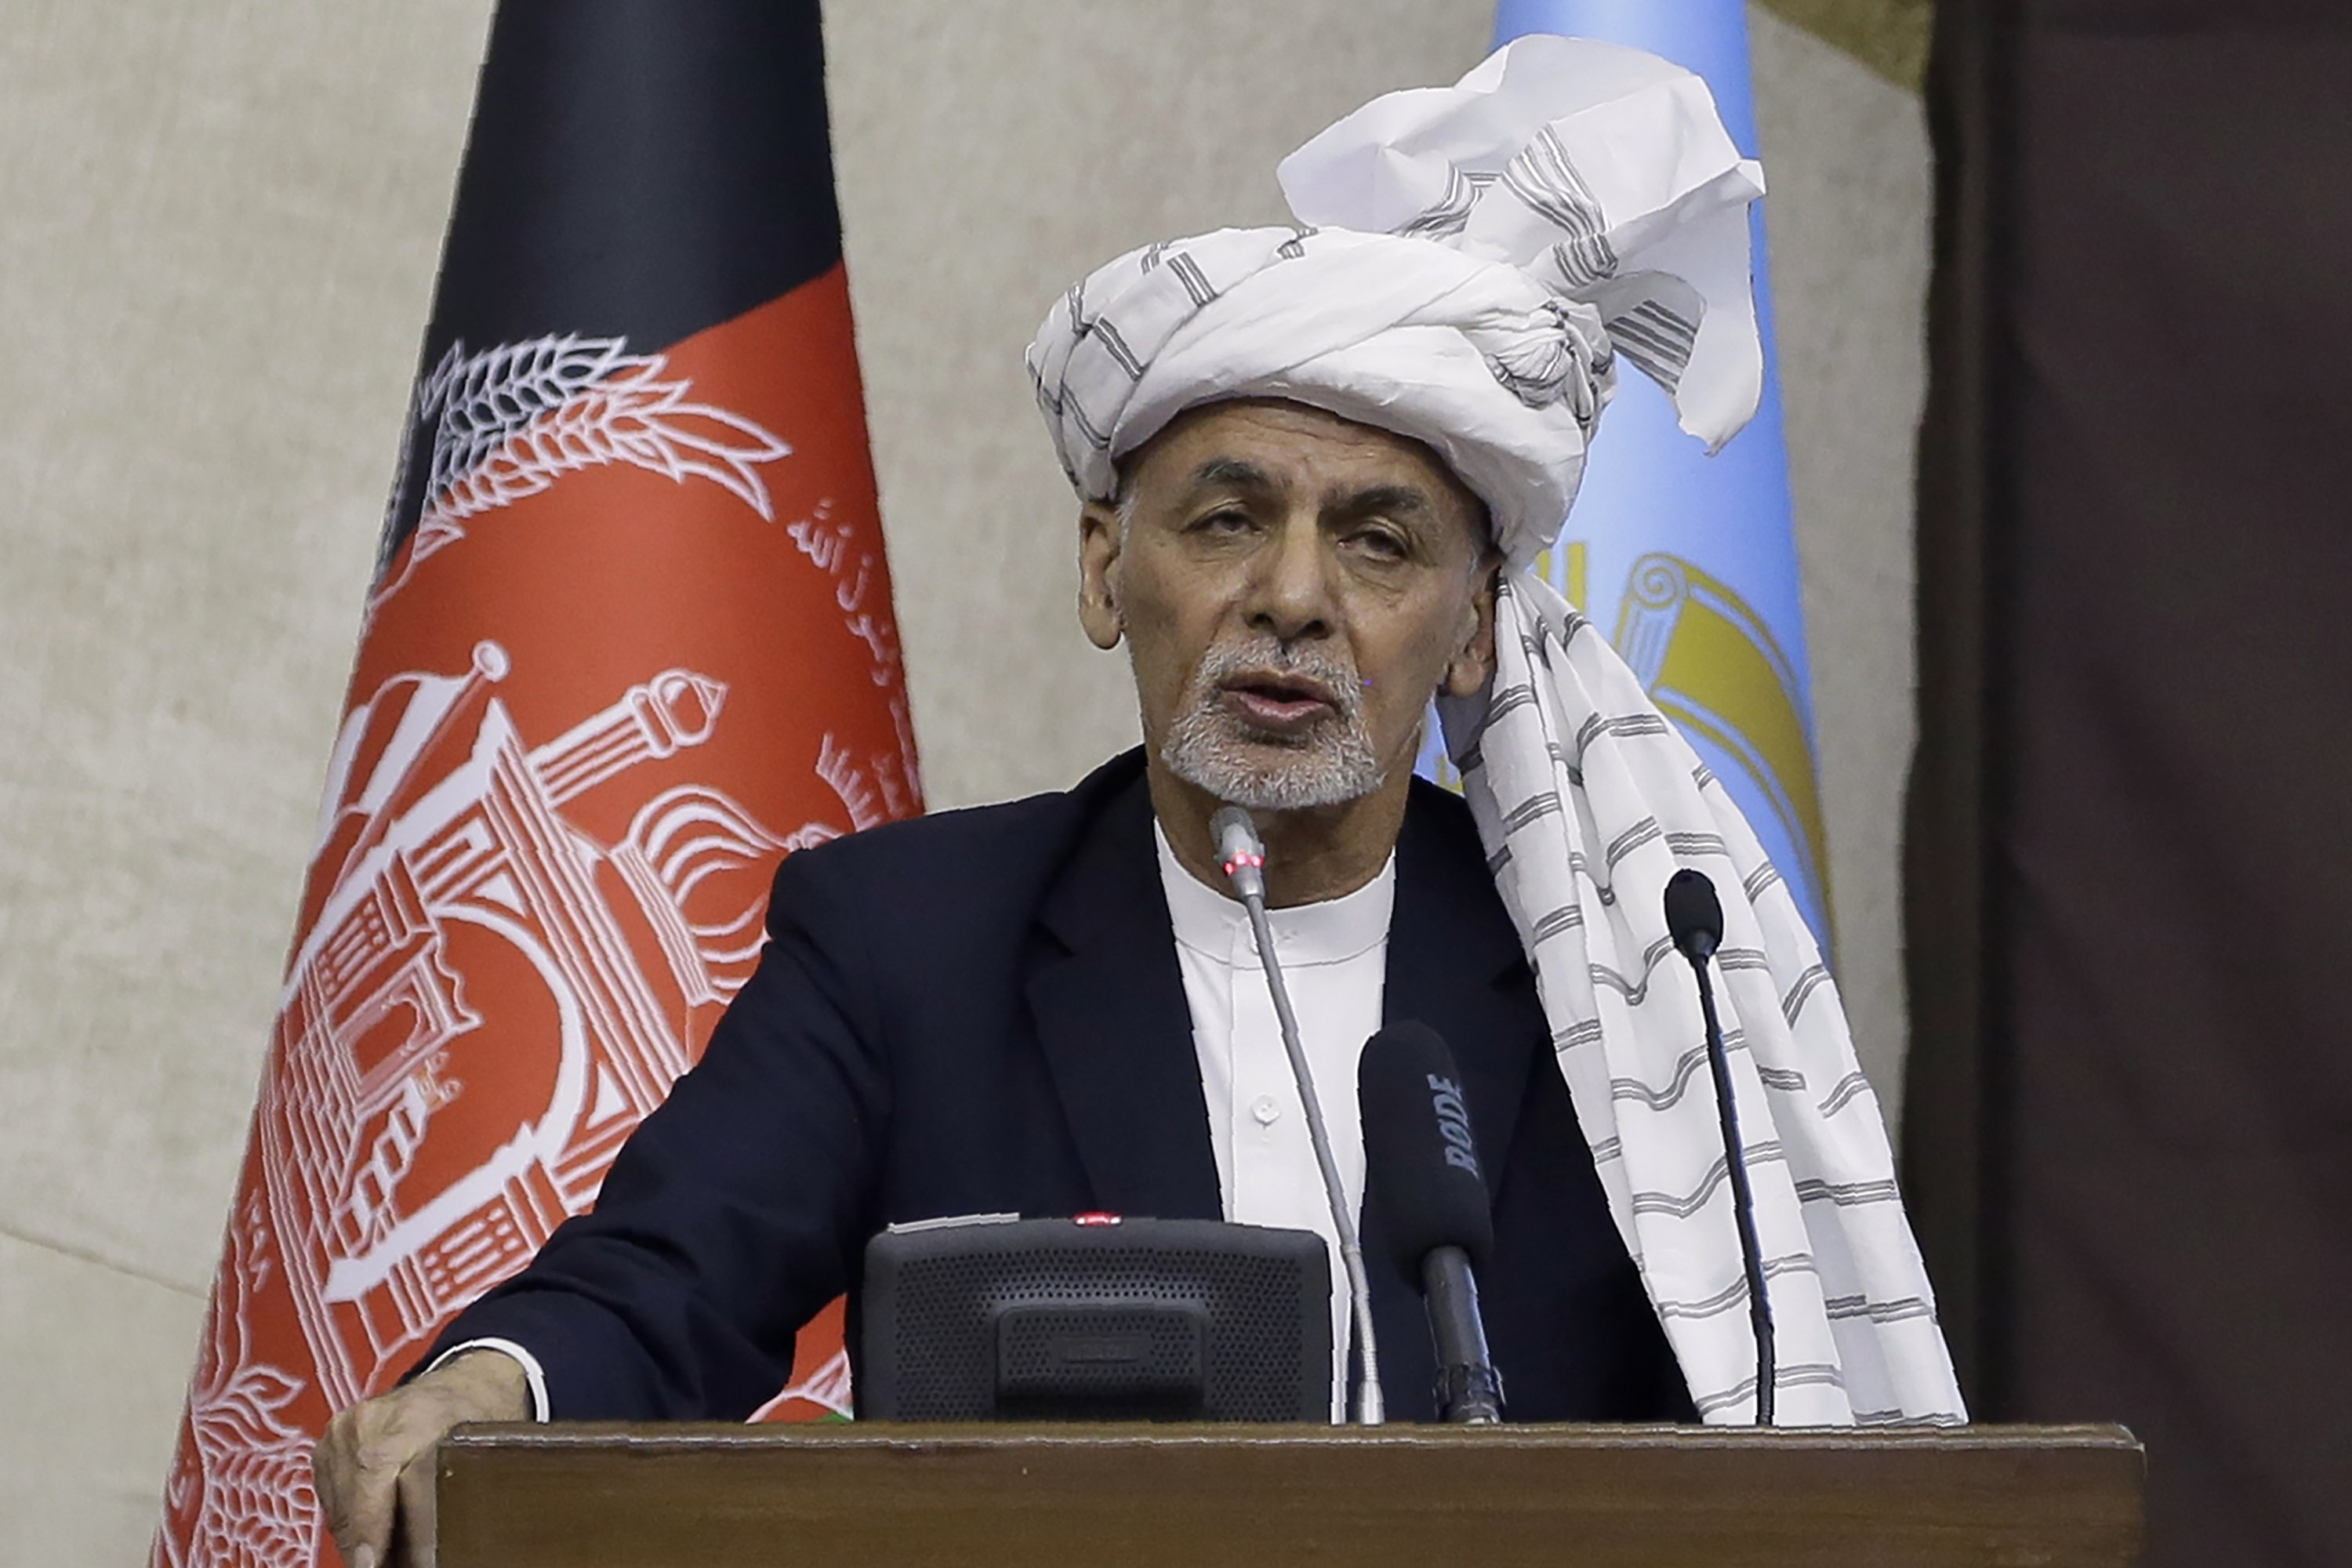 Afghan President Ashraf Ghani speaks during the opening ceremony of the new legislative session of the Parliament in Kabul, Afghanistan, March 6, 2021.(AP Photo)